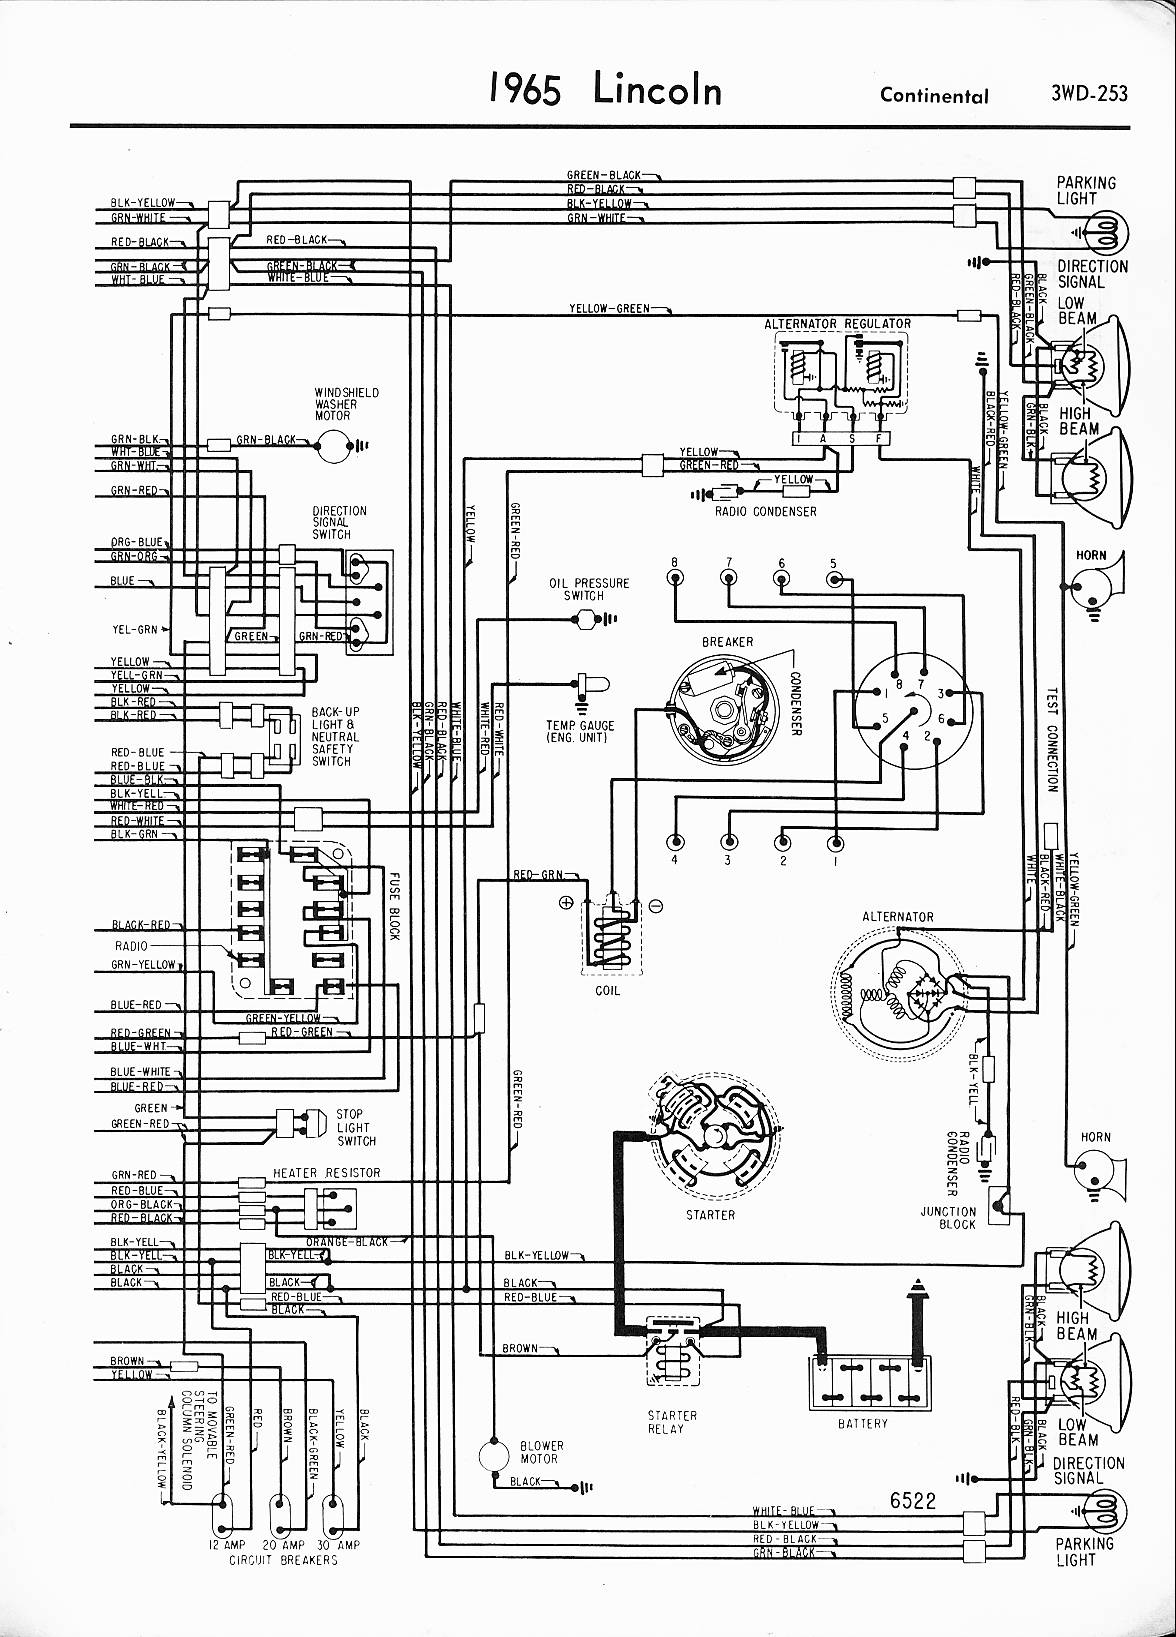 Lincoln Wiring Diagrams 1957 1965 1968 Pontiac Vacuum Diagram Right Half